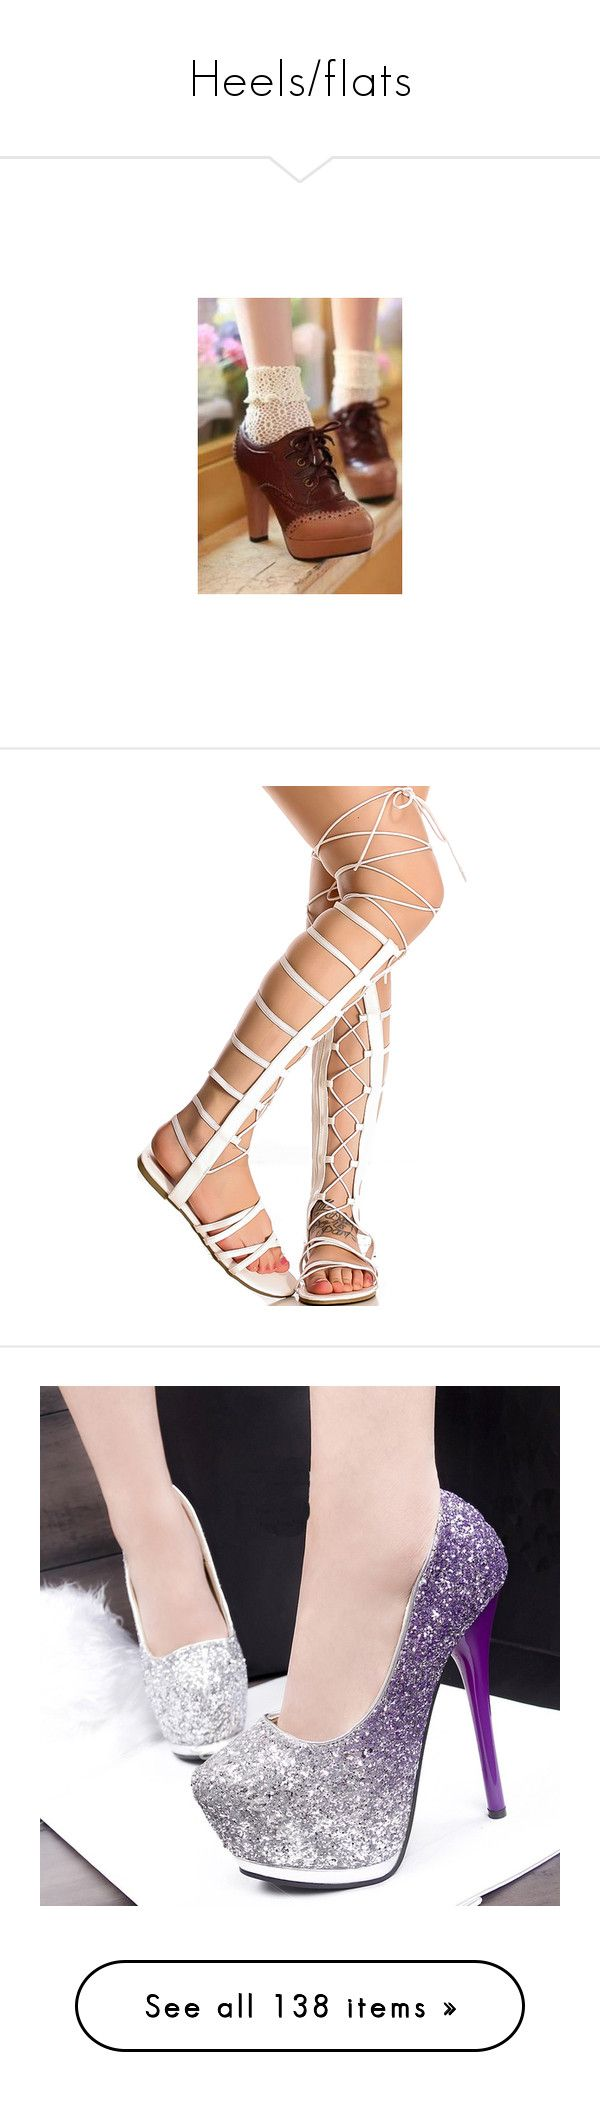 """Heels/flats"" by cloverrebel ❤ liked on Polyvore featuring shoes, sandals, white, open toe sandals, lace up gladiator sandals, lace up shoes, white lace up sandals, white gladiator sandals, pumps and platform pumps"